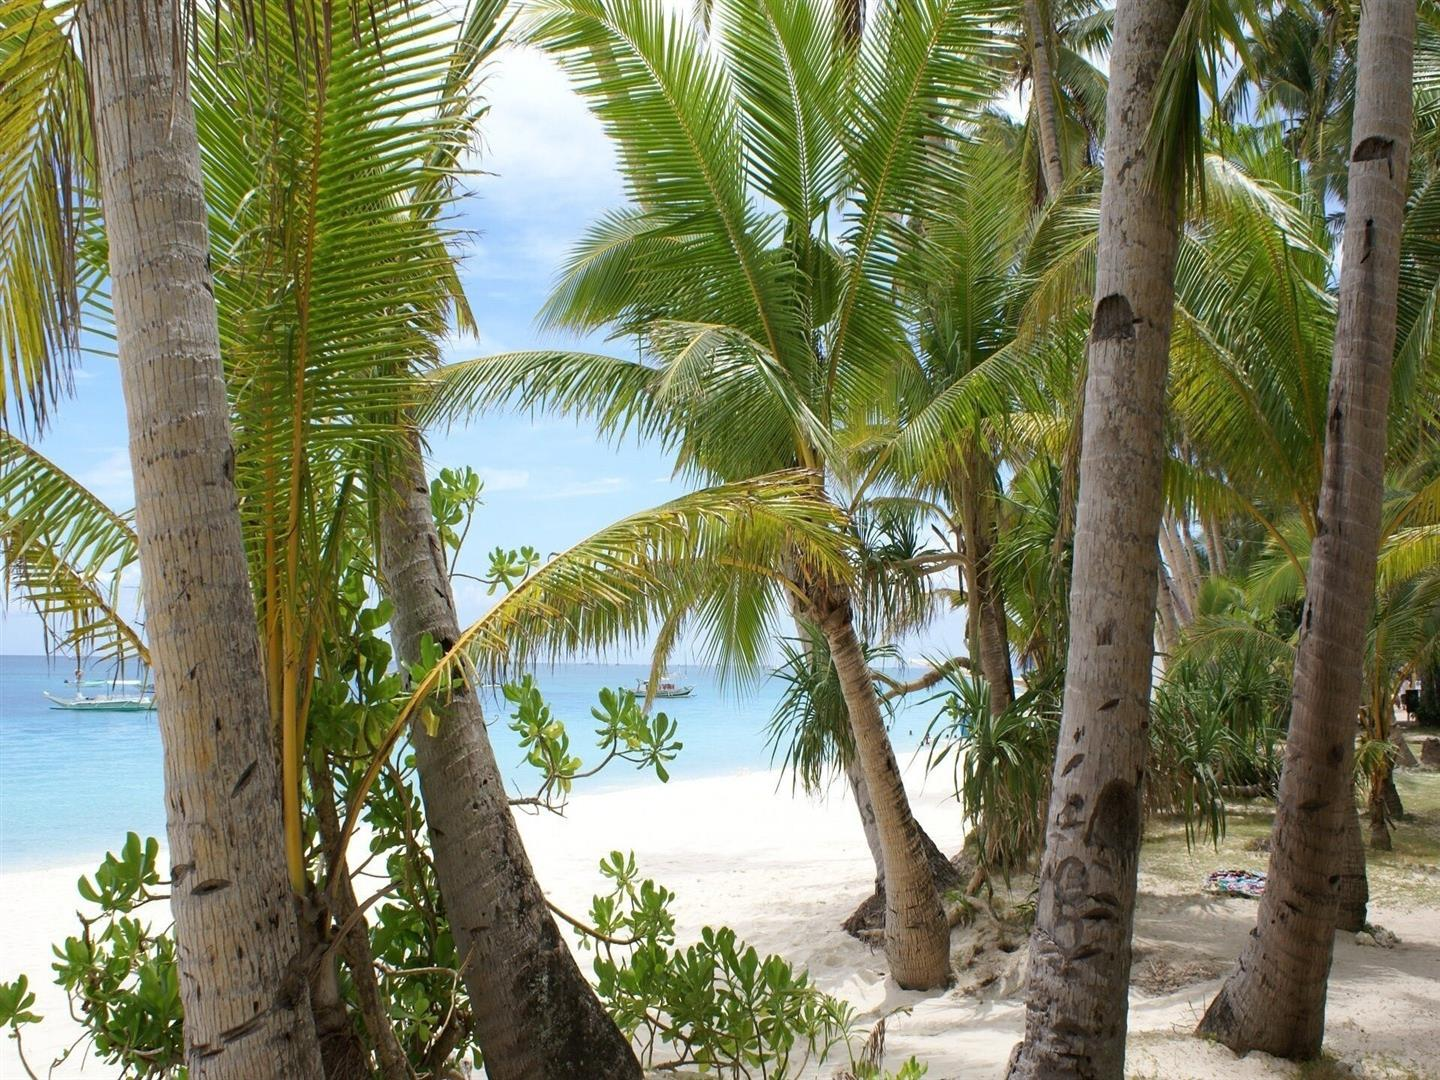 1440x1080 Beautiful Beach and Coconut Tree Photo